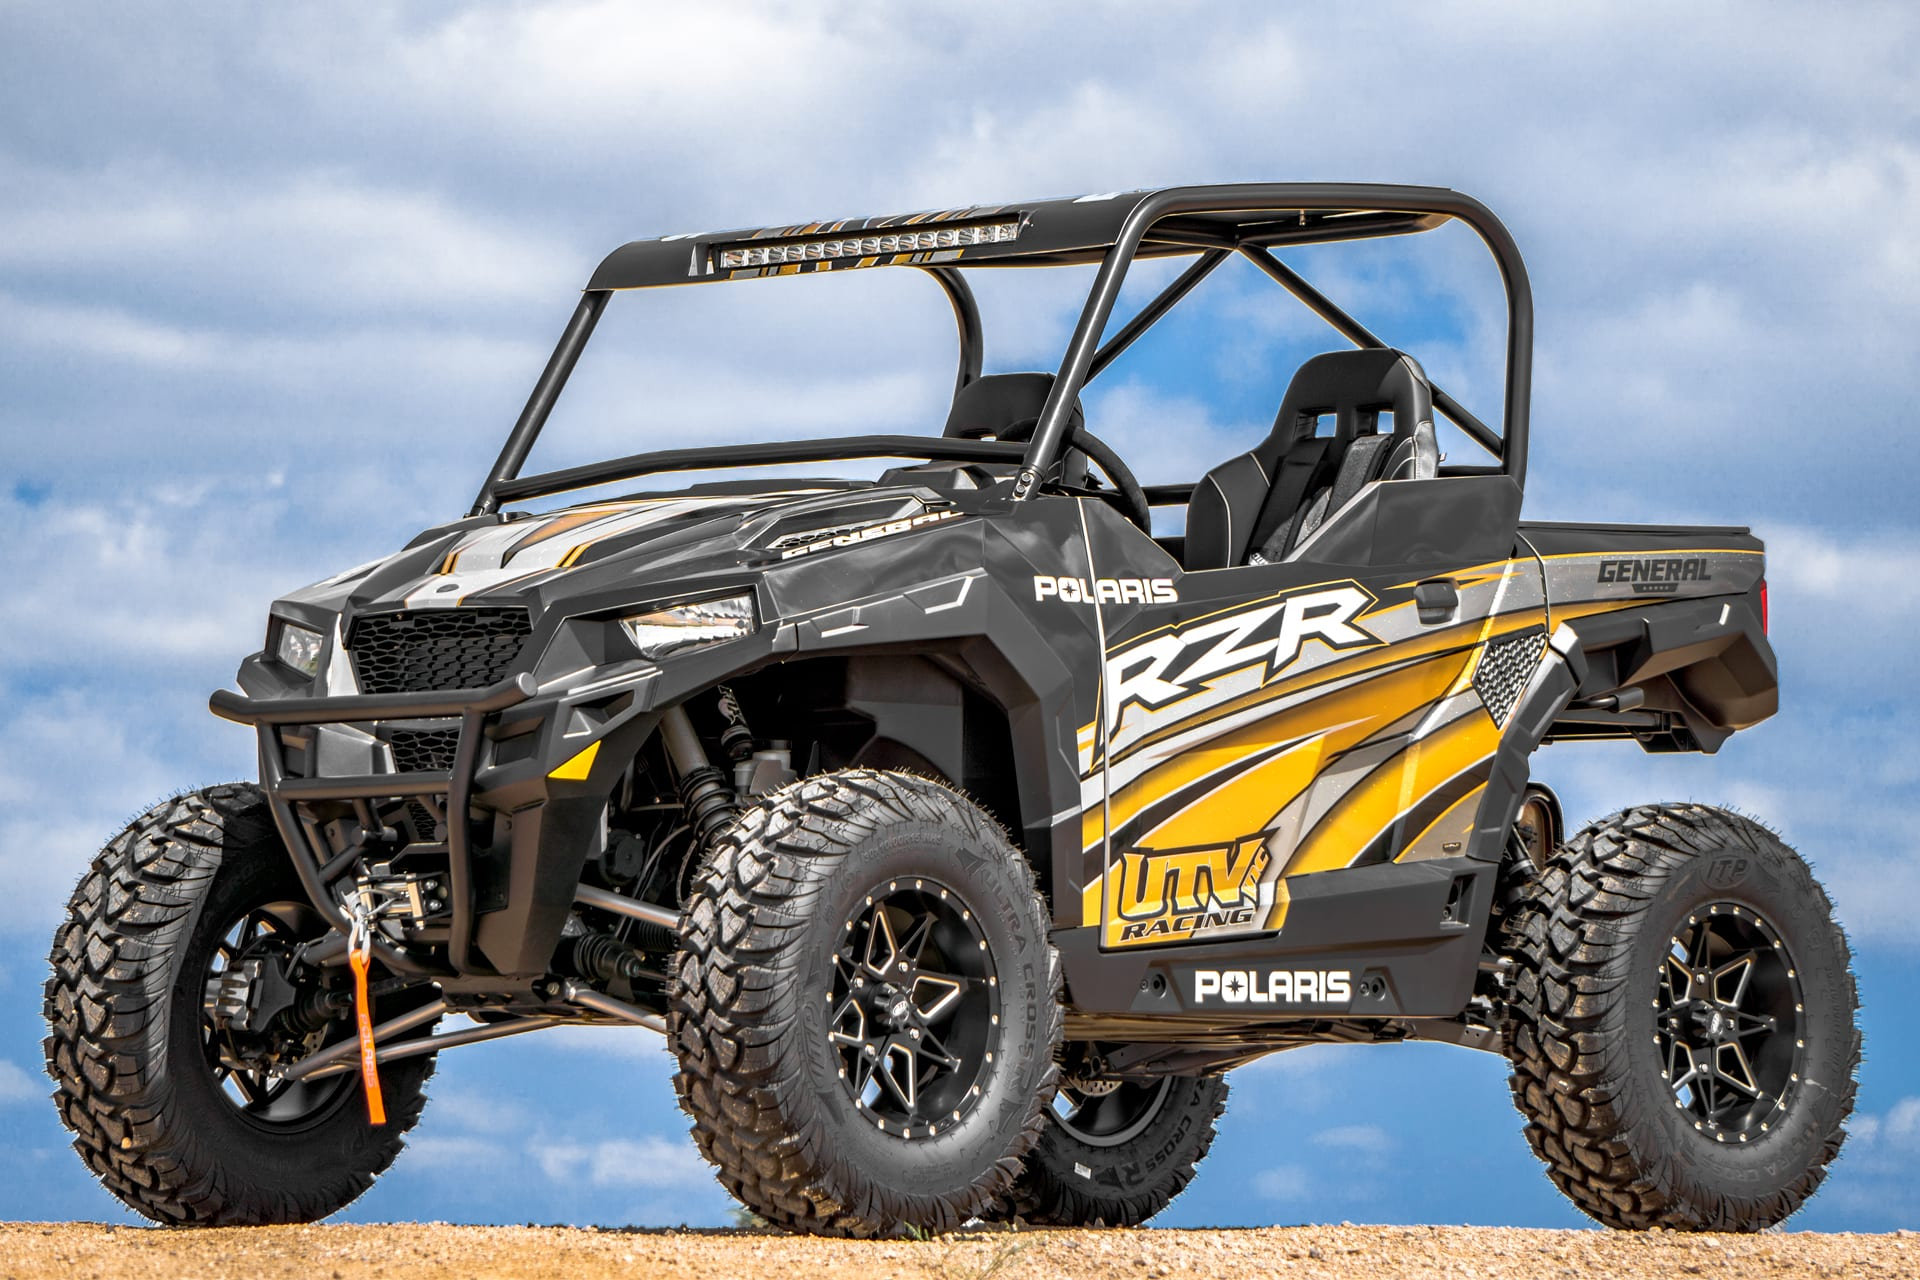 Polaris Recalls 13,500 RZR and General ROVs